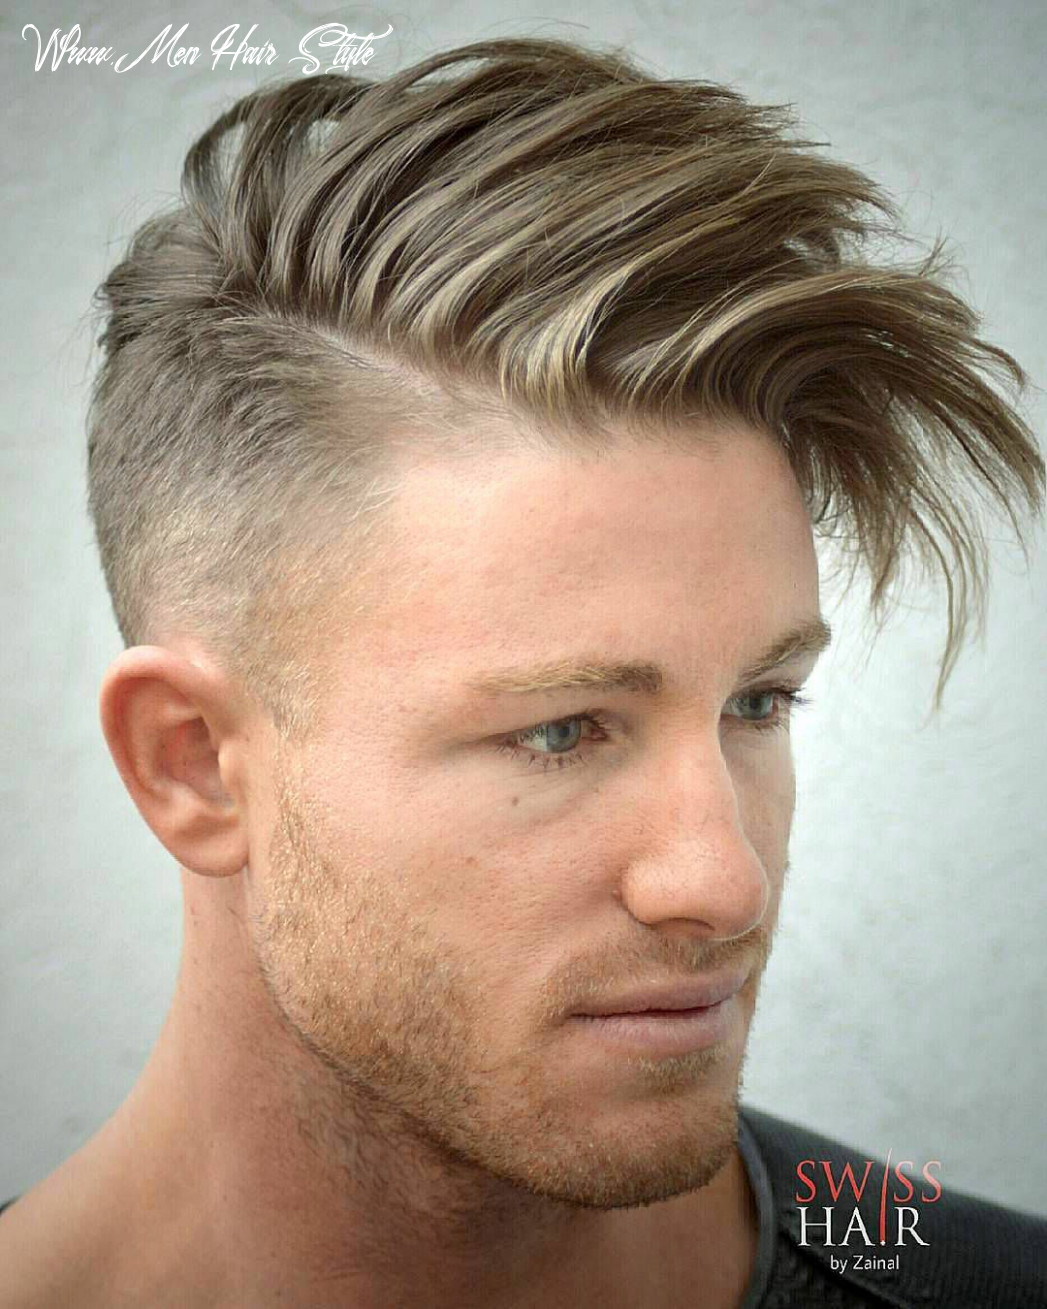 Long hair hairstyles for men: 12 cool haircut styles for 1212 www